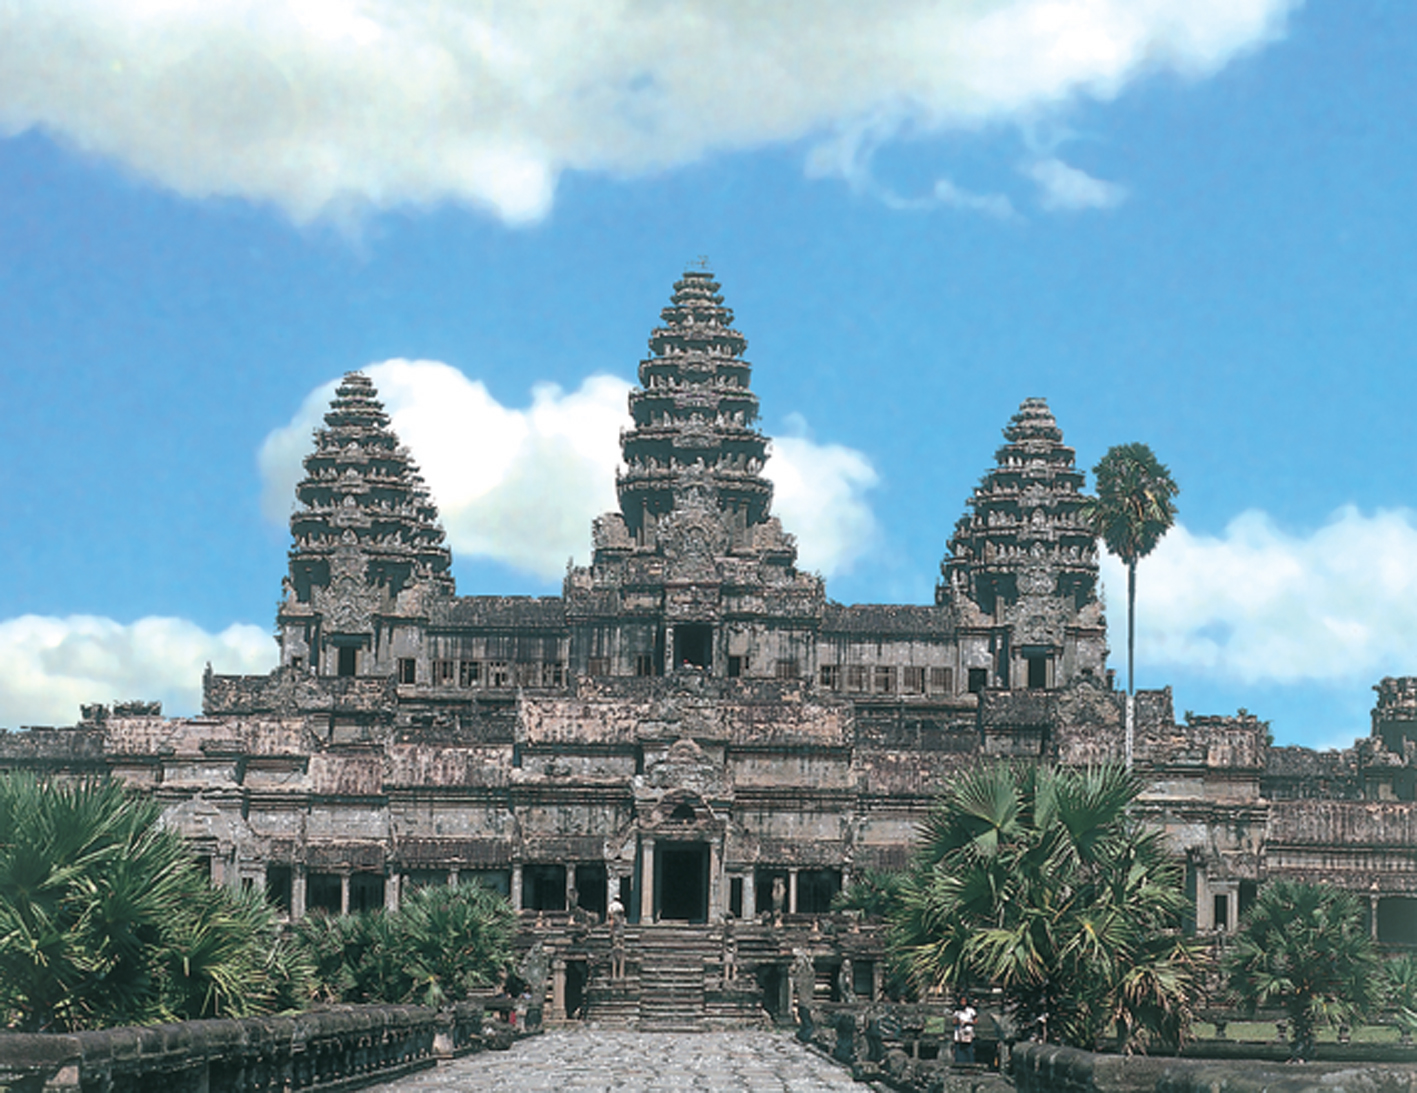 Nev 360 - The World Wonders: Preview: Angkor Wat